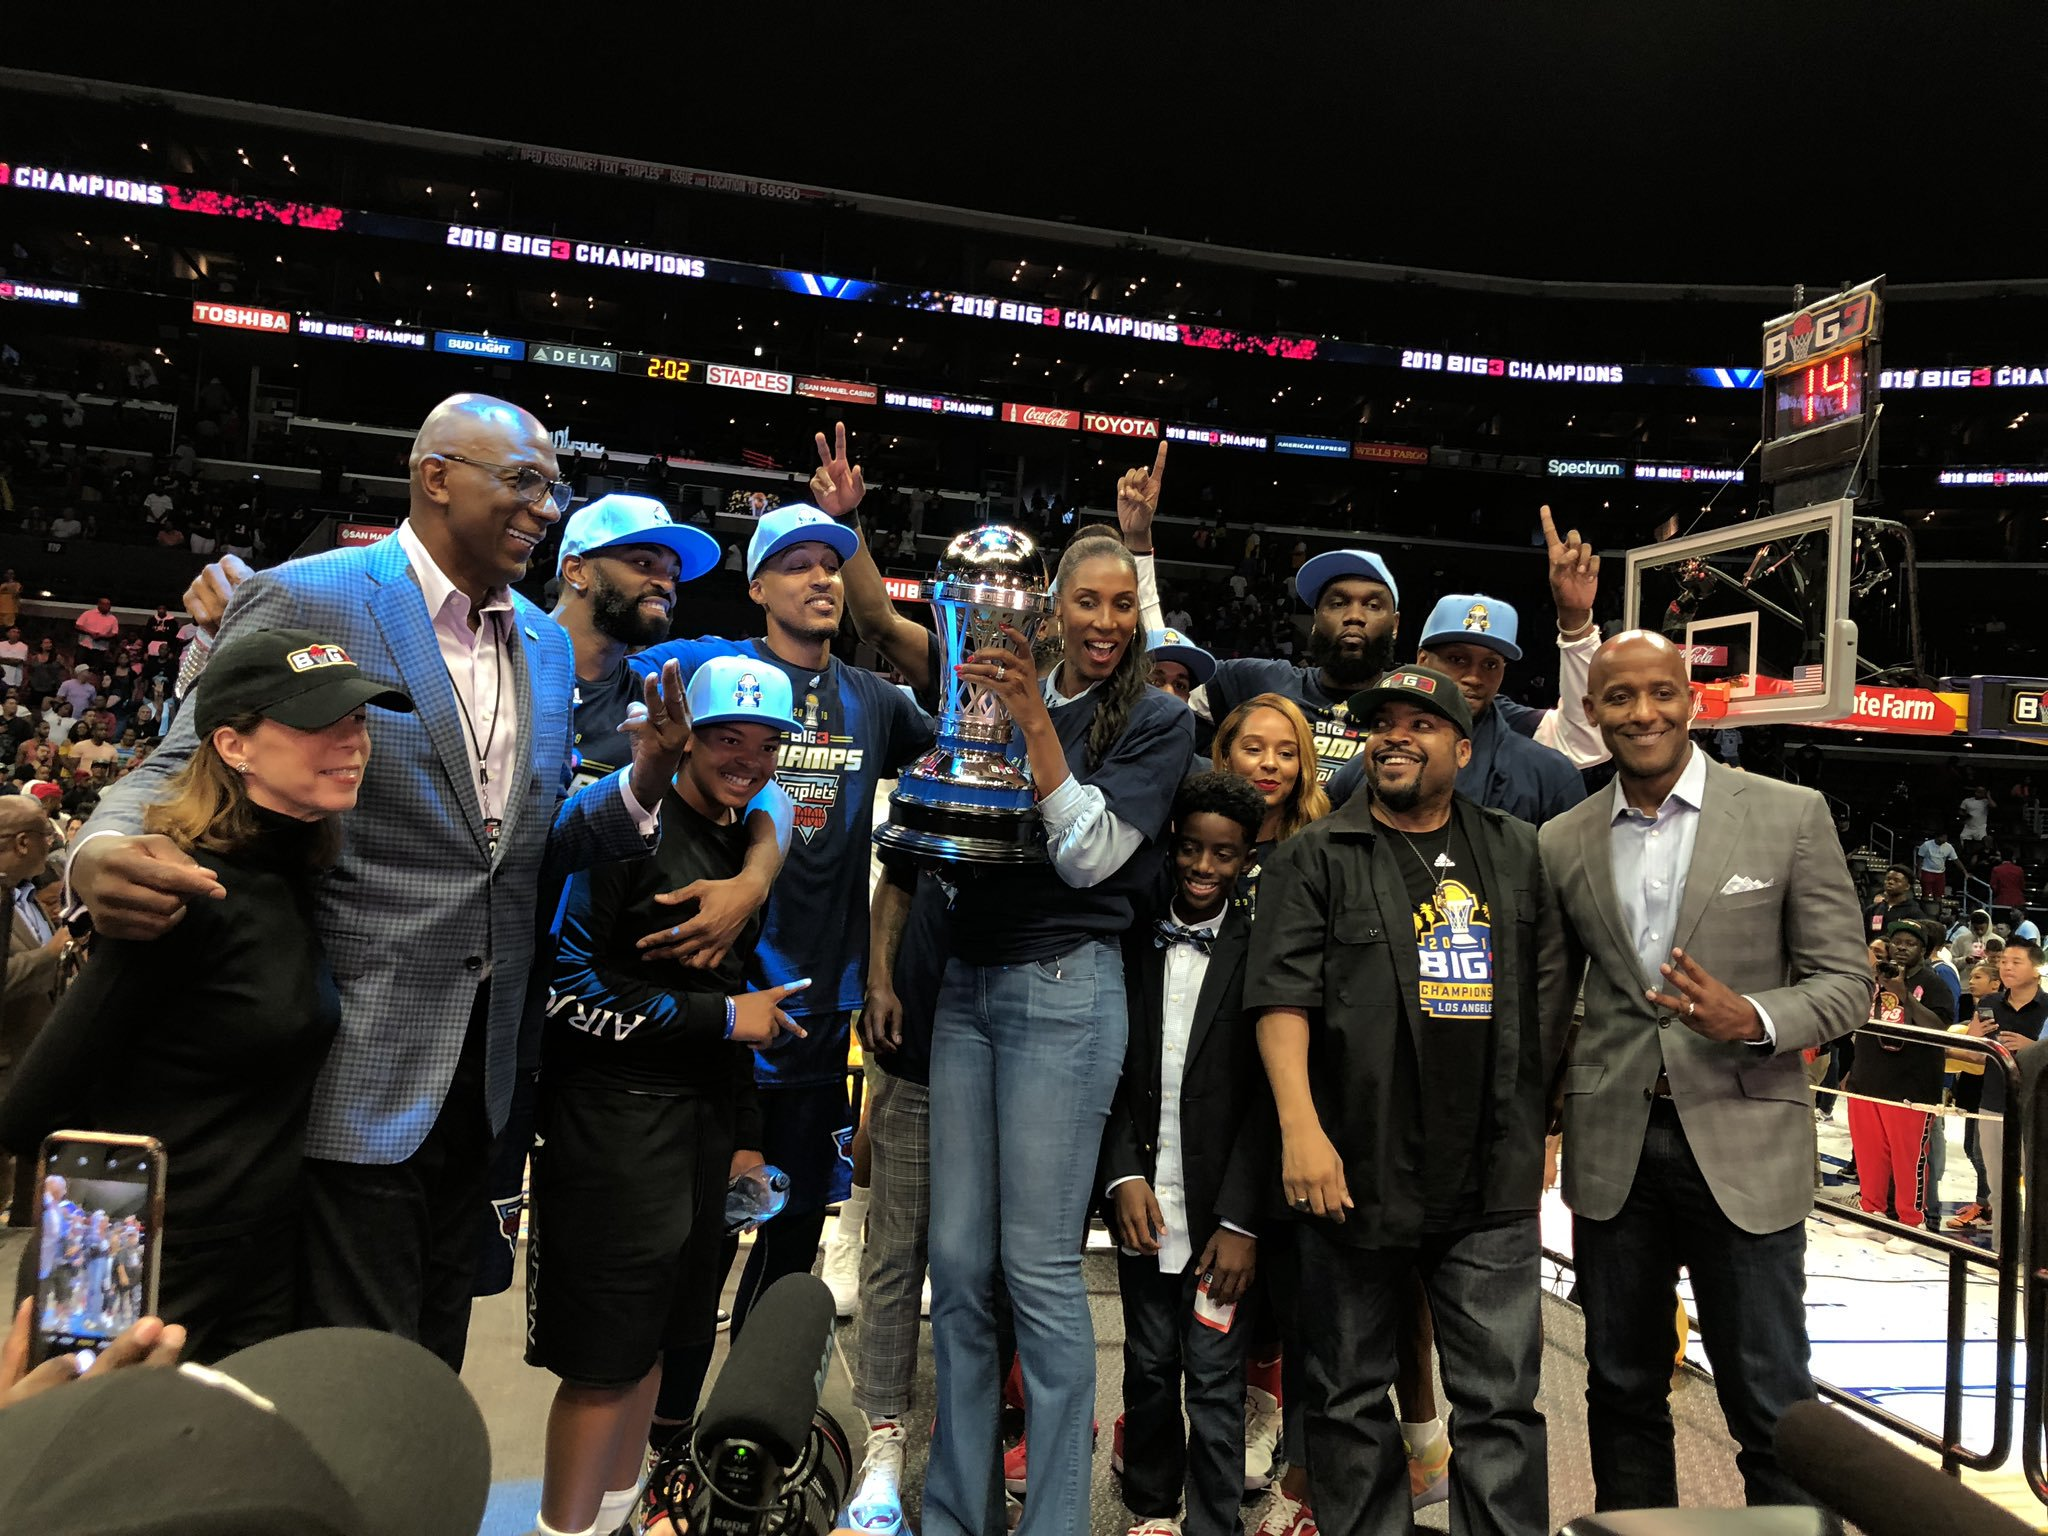 🗣️ Congratulations to #WNBA legend and @thebig3 Coach of the Year @LisaLeslie on winning the #BIG3Championship 🏆   📷 @STAPLESCenter https://t.co/pFh8v3wgqr